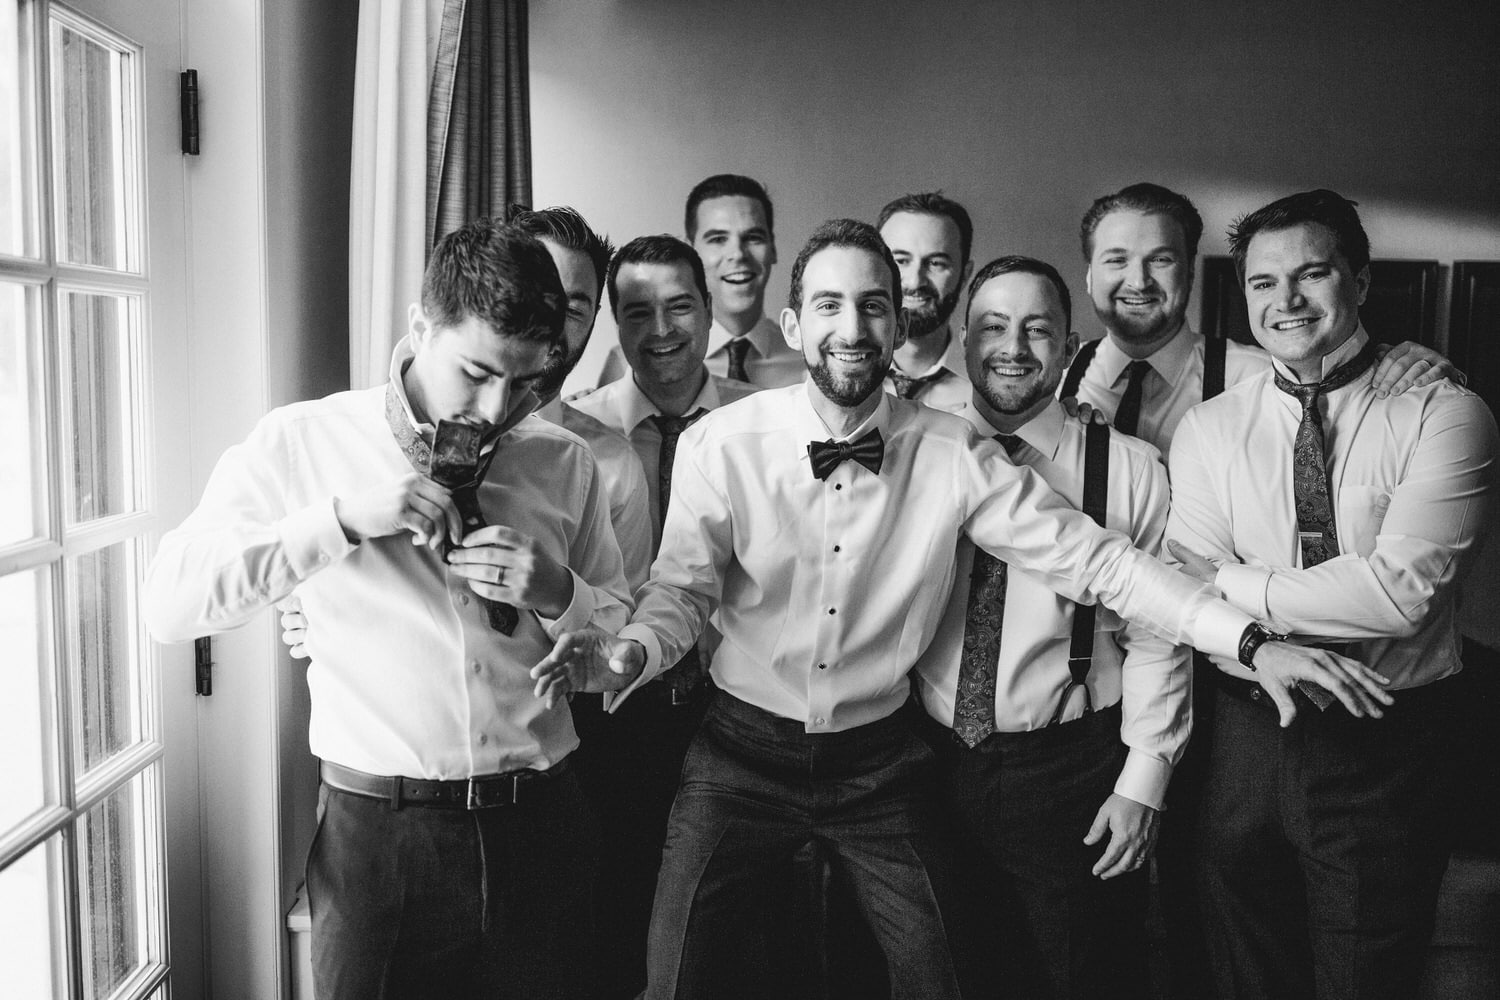 Groom and Groomsmen getting ready and having fun